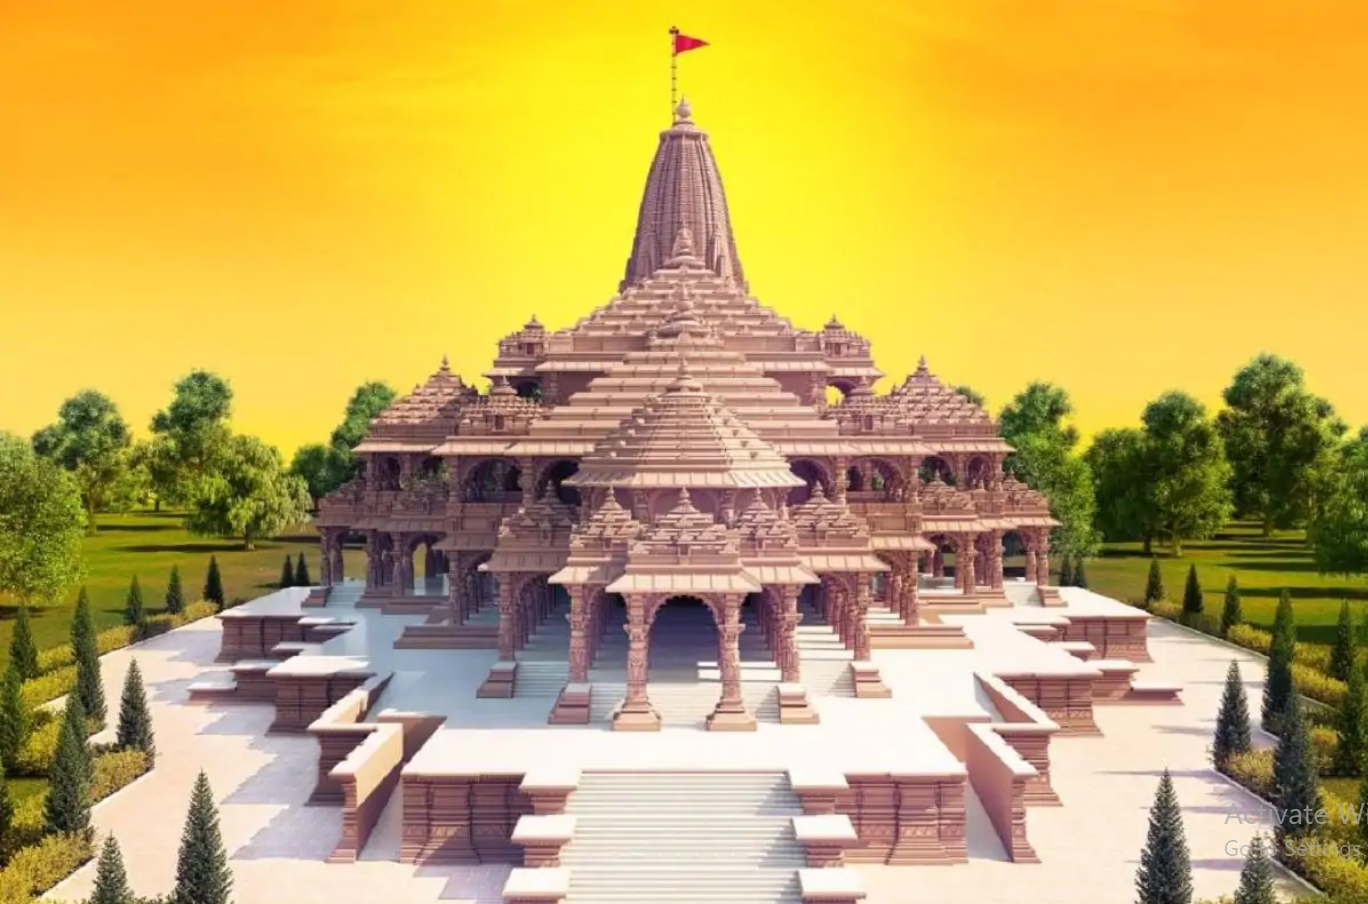 Mandir Wahin Banega – Then Why am I not Celebrating?